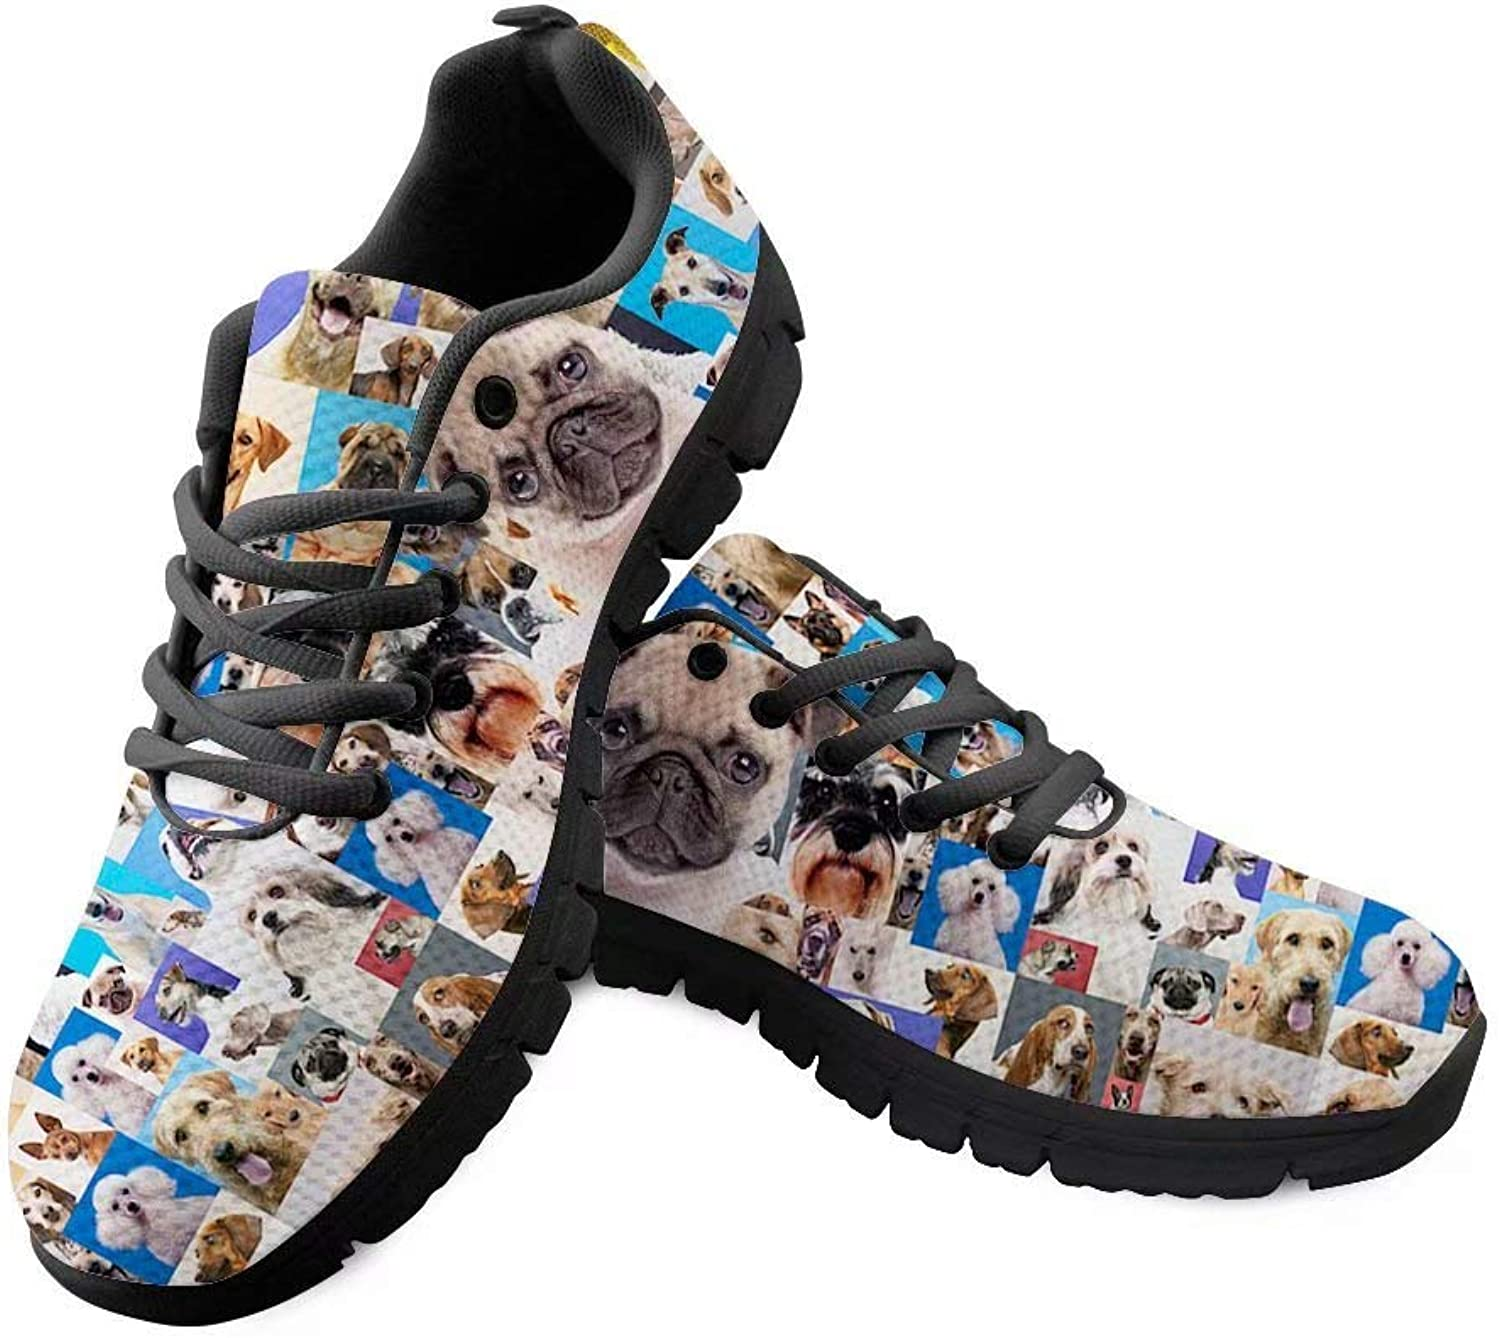 Cozeyat 3D Animal Printed Women's Sneakers Fashion Breathable Casual Sport Gym Jogging Walking shoes